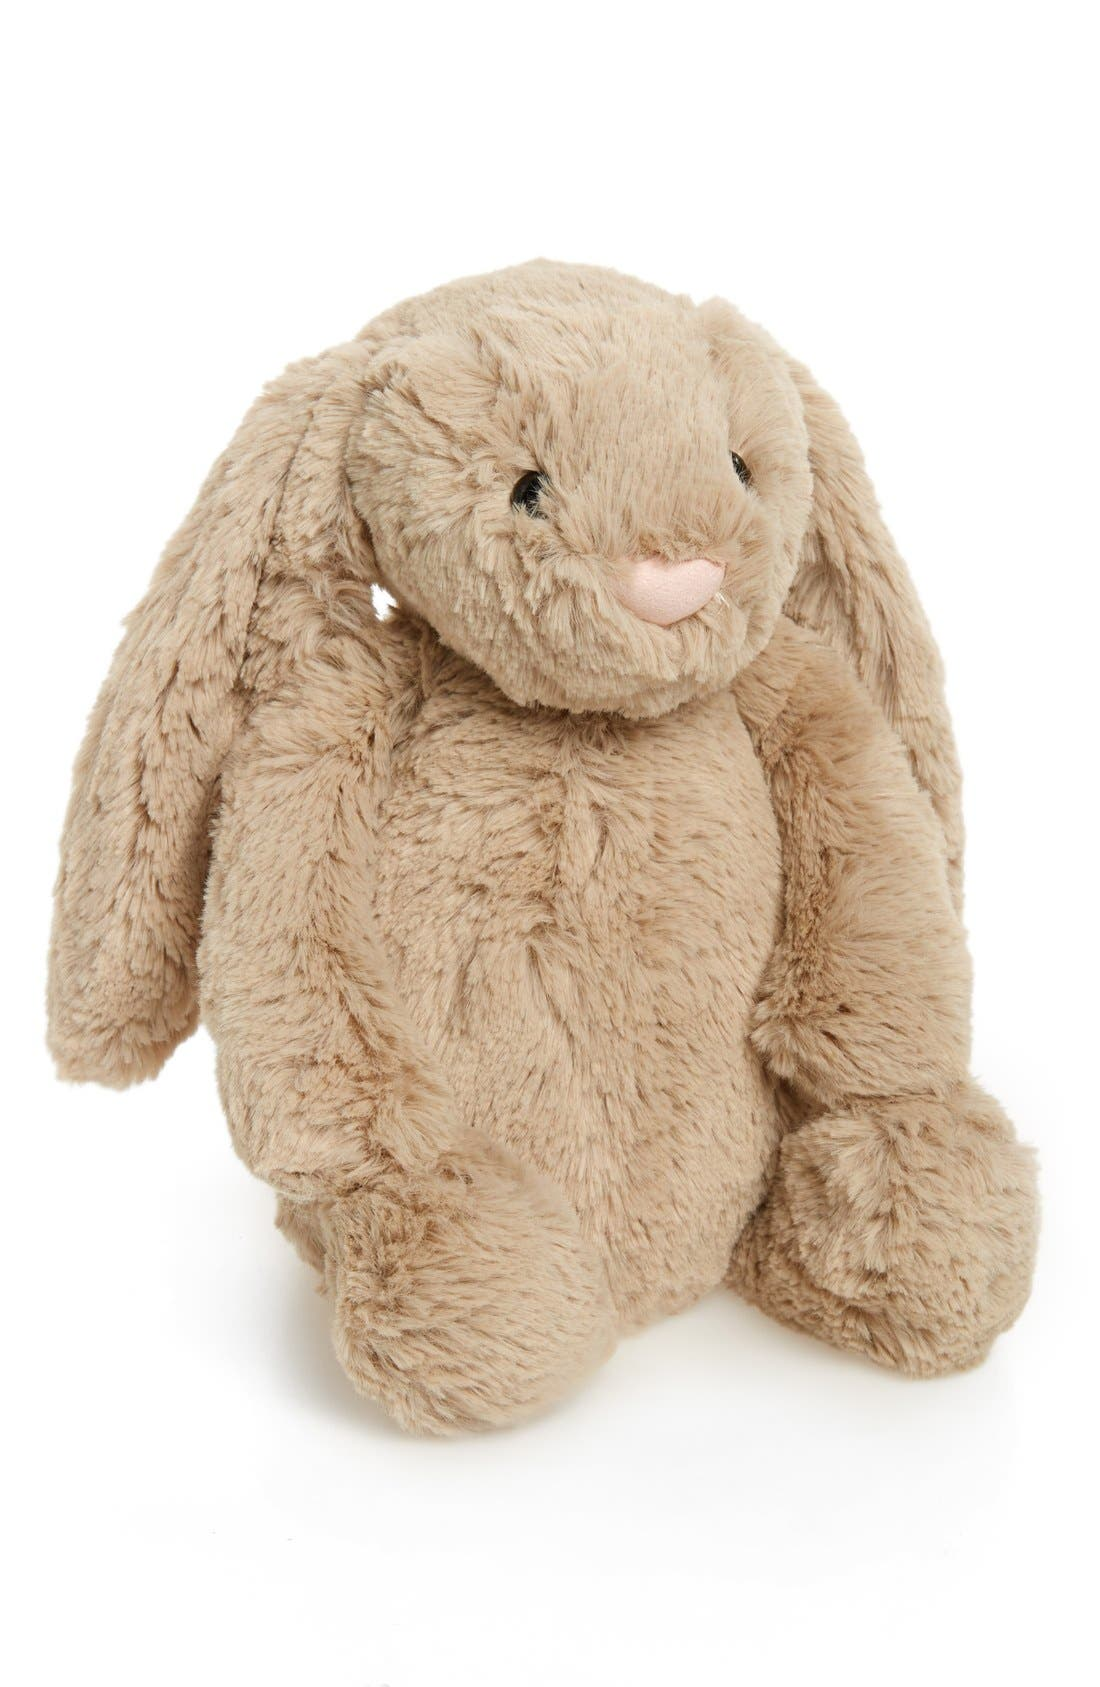 Alternate Image 1 Selected - Jellycat 'Bashful' Bunny